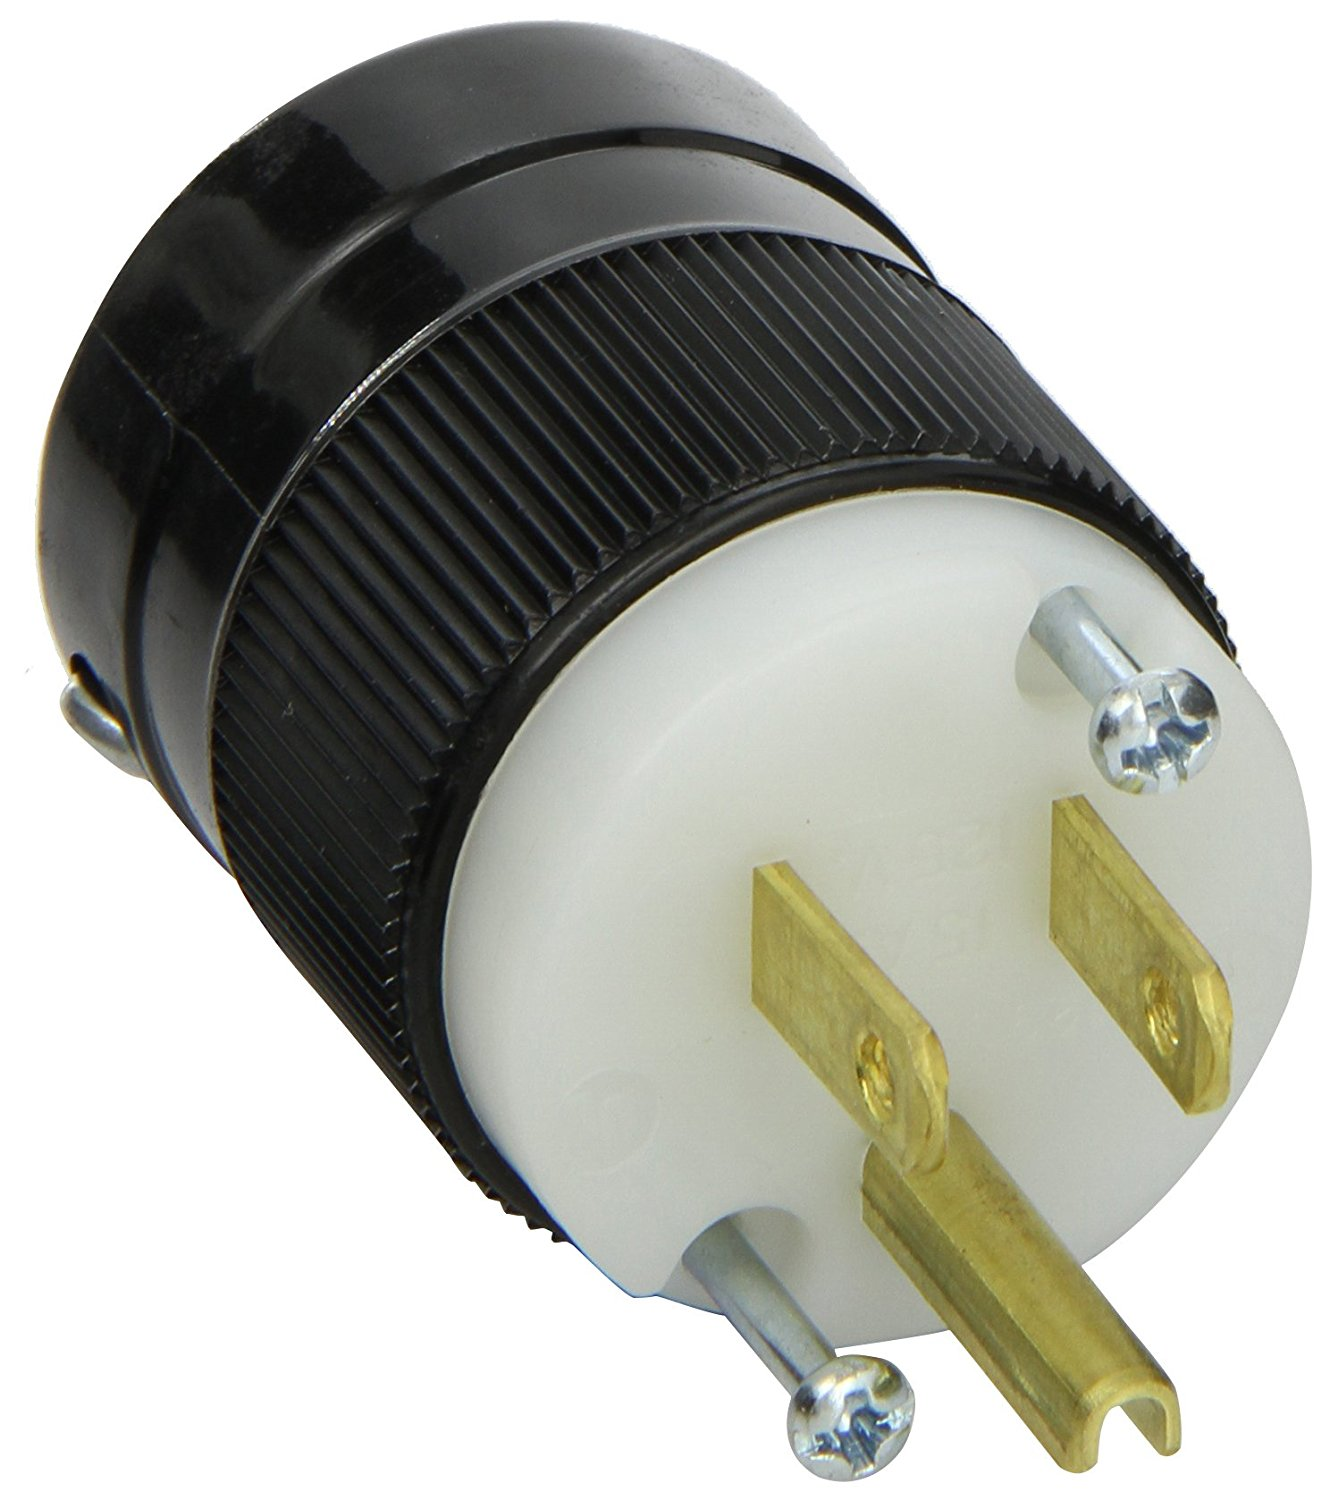 hight resolution of marinco 5266 15 amp 125 volt 2 pole 3 wire straight blade plug